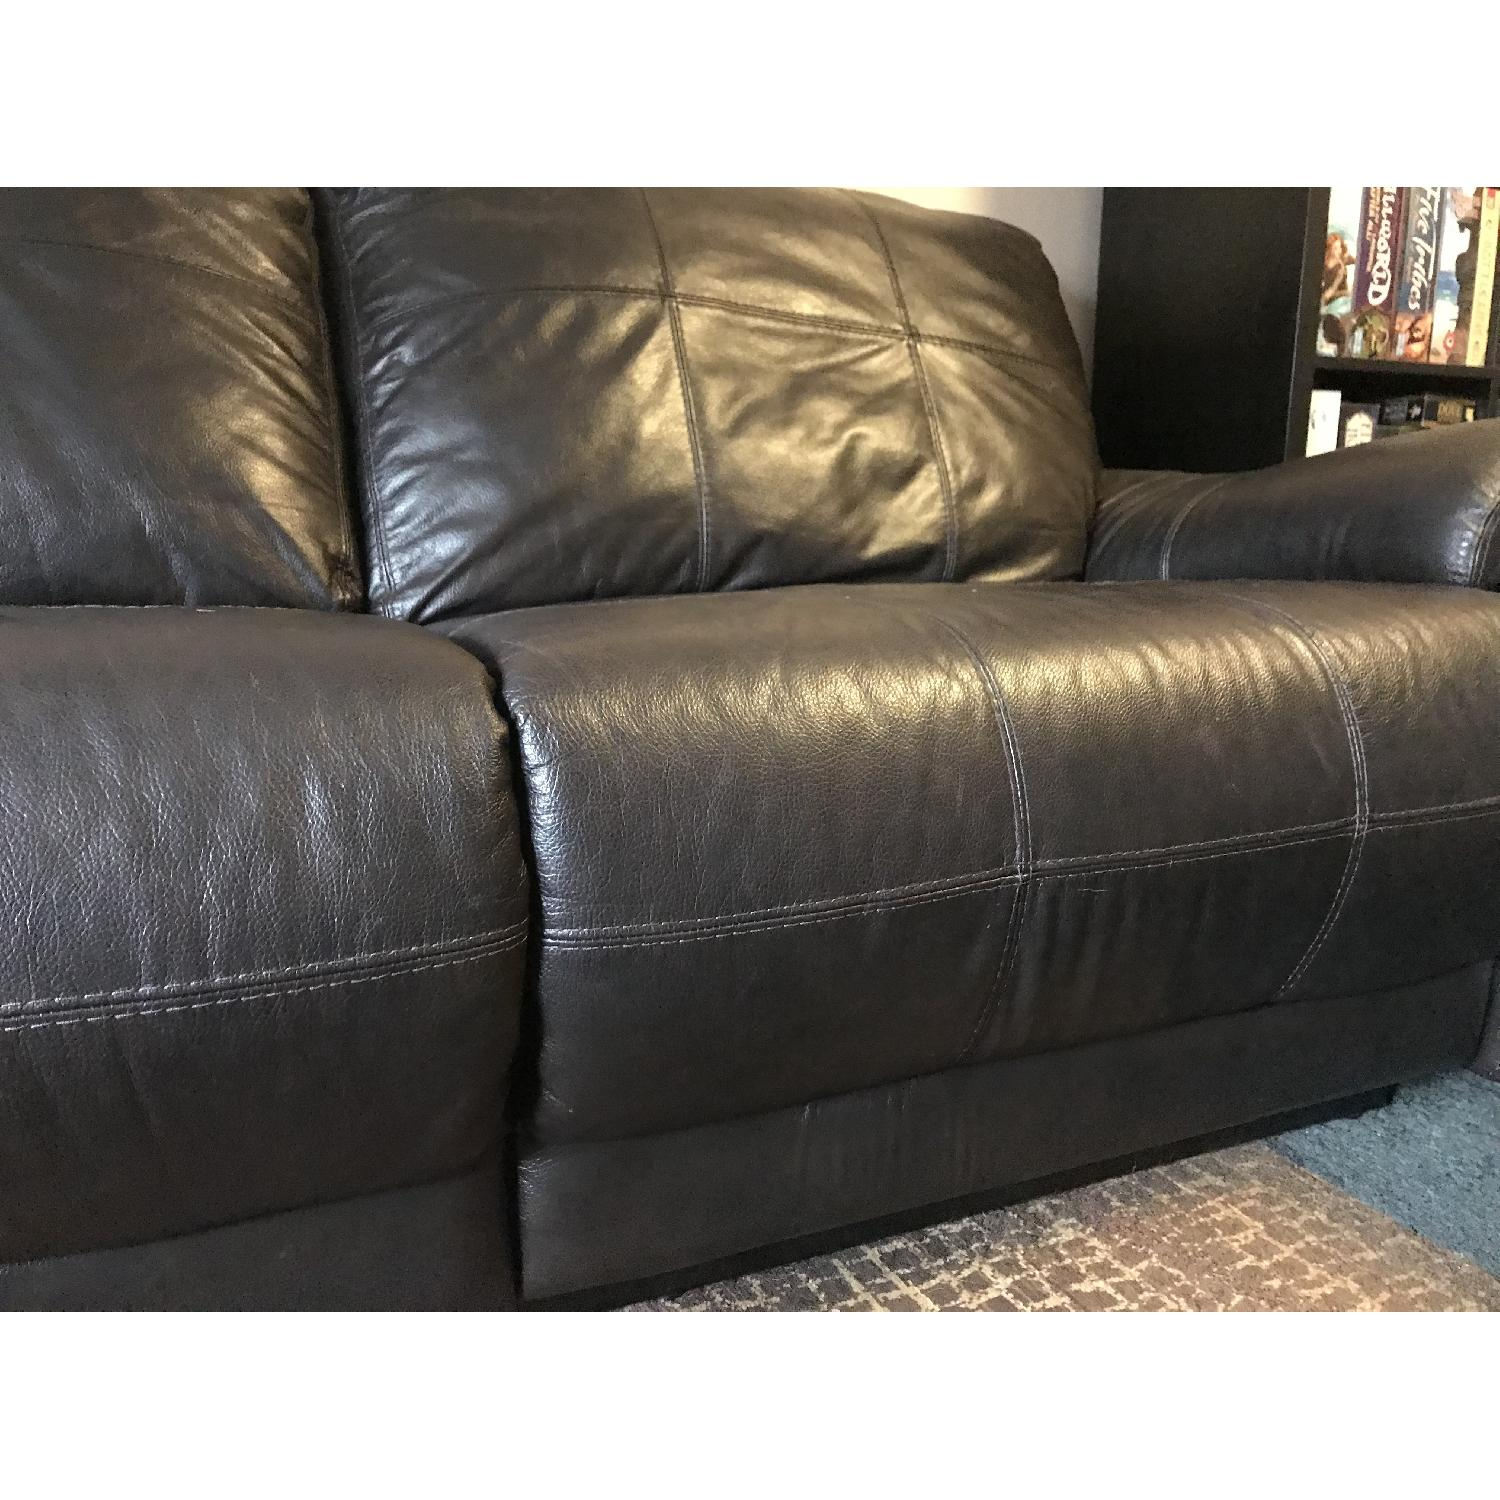 Raymour & Flanigan Power Leather Reclining Sofa - image-4